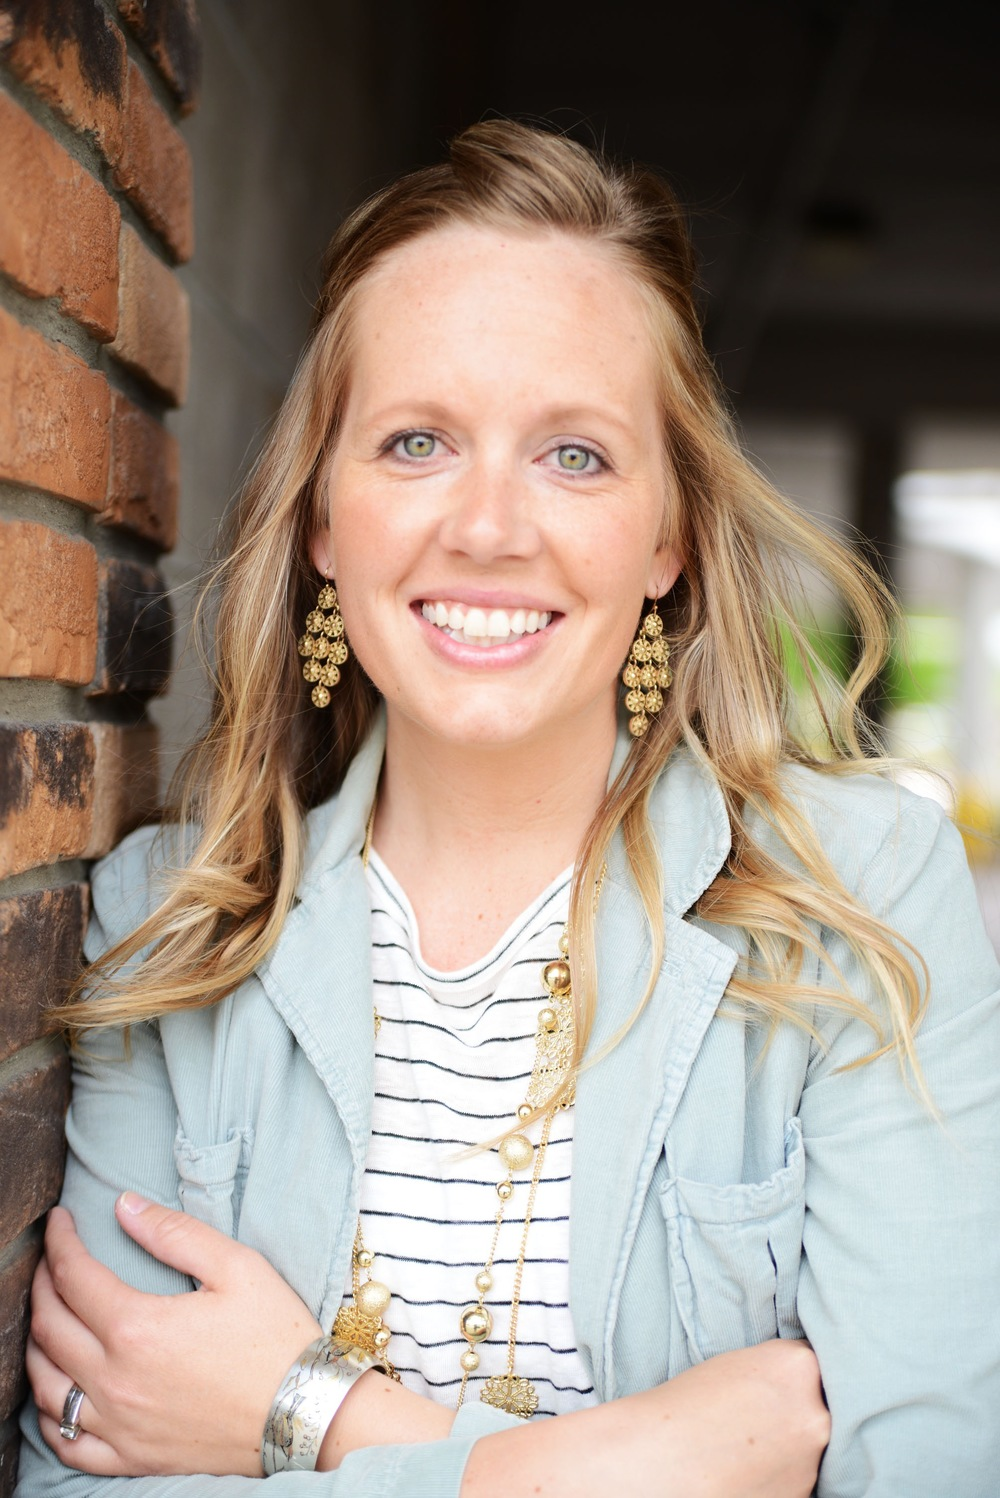 Lead Interior Designer and Space Planning - Hallie Veith in Denver, CO